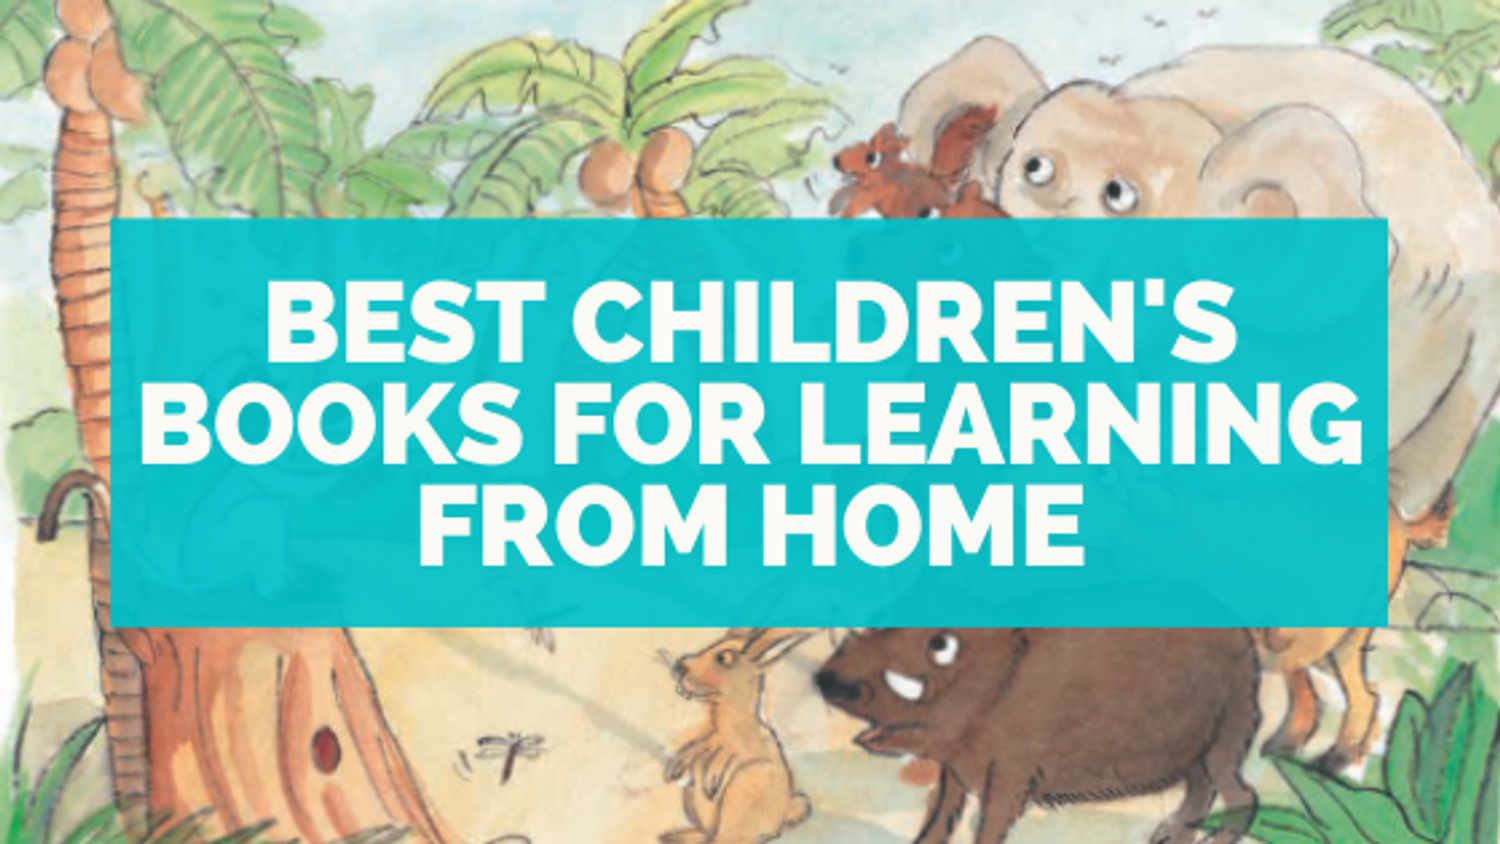 The Best Children's Books for Learning from Home